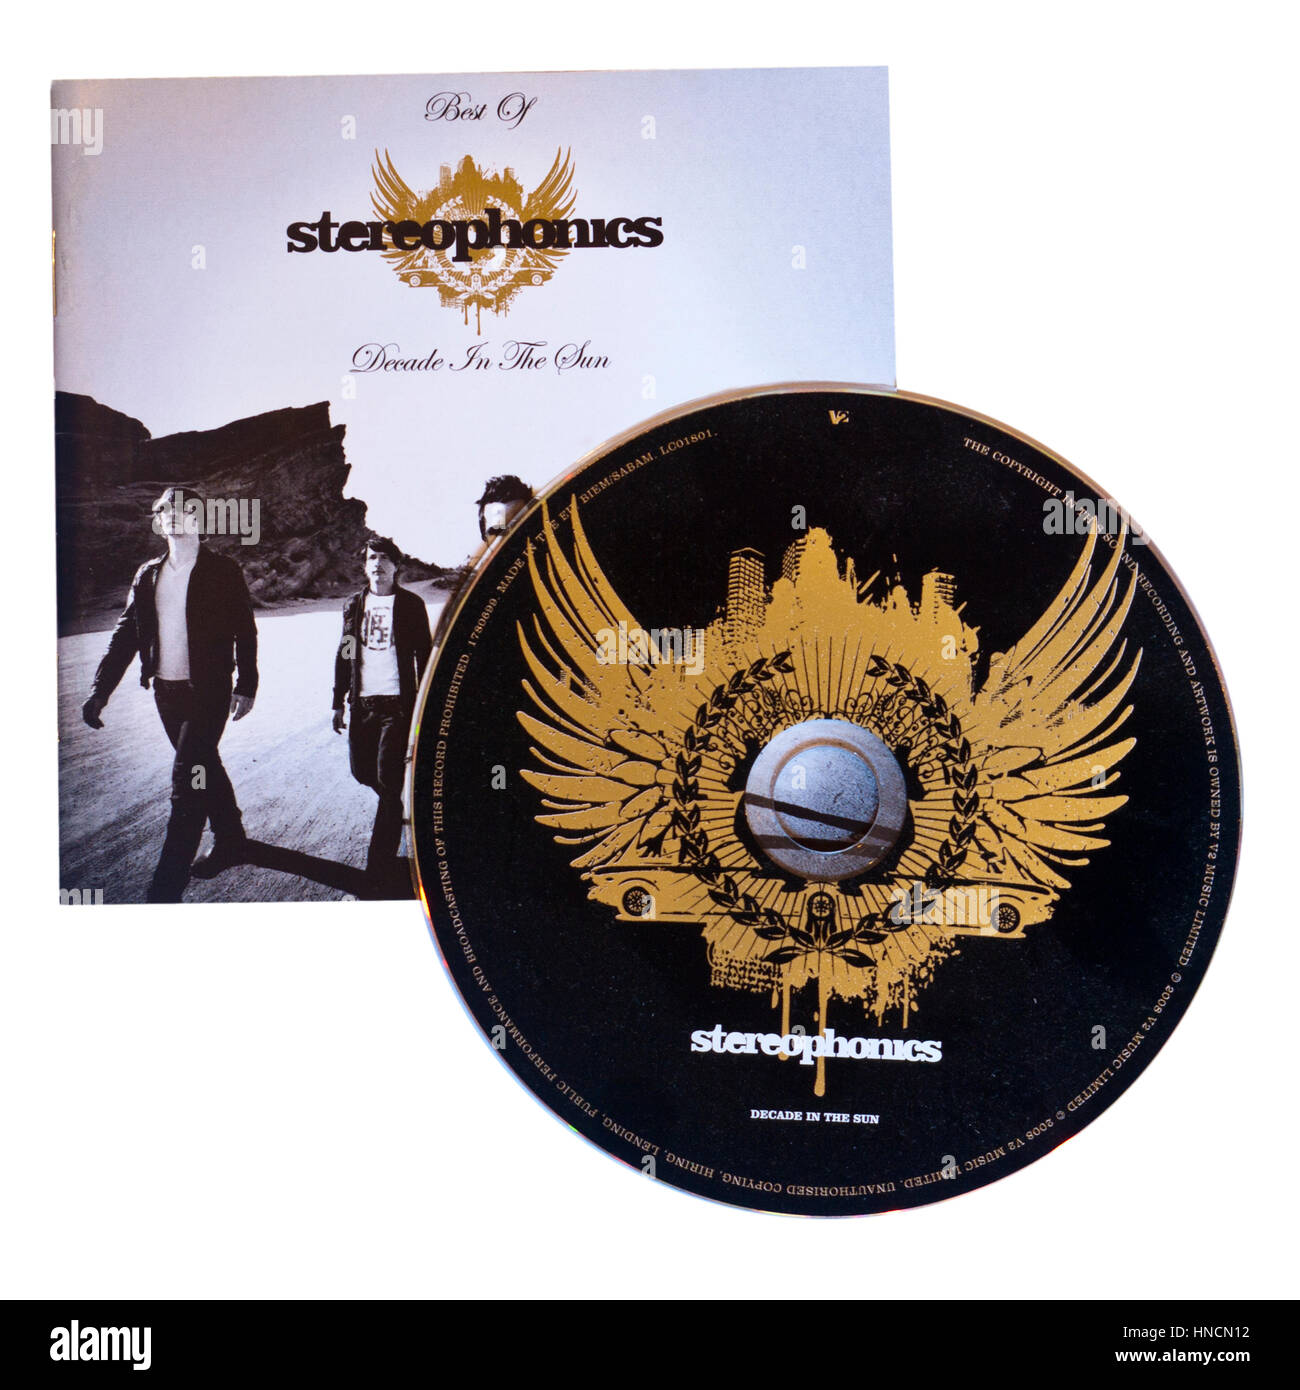 The Best Of Stereophonics Decade In THe Sun Music CD - Stock Image